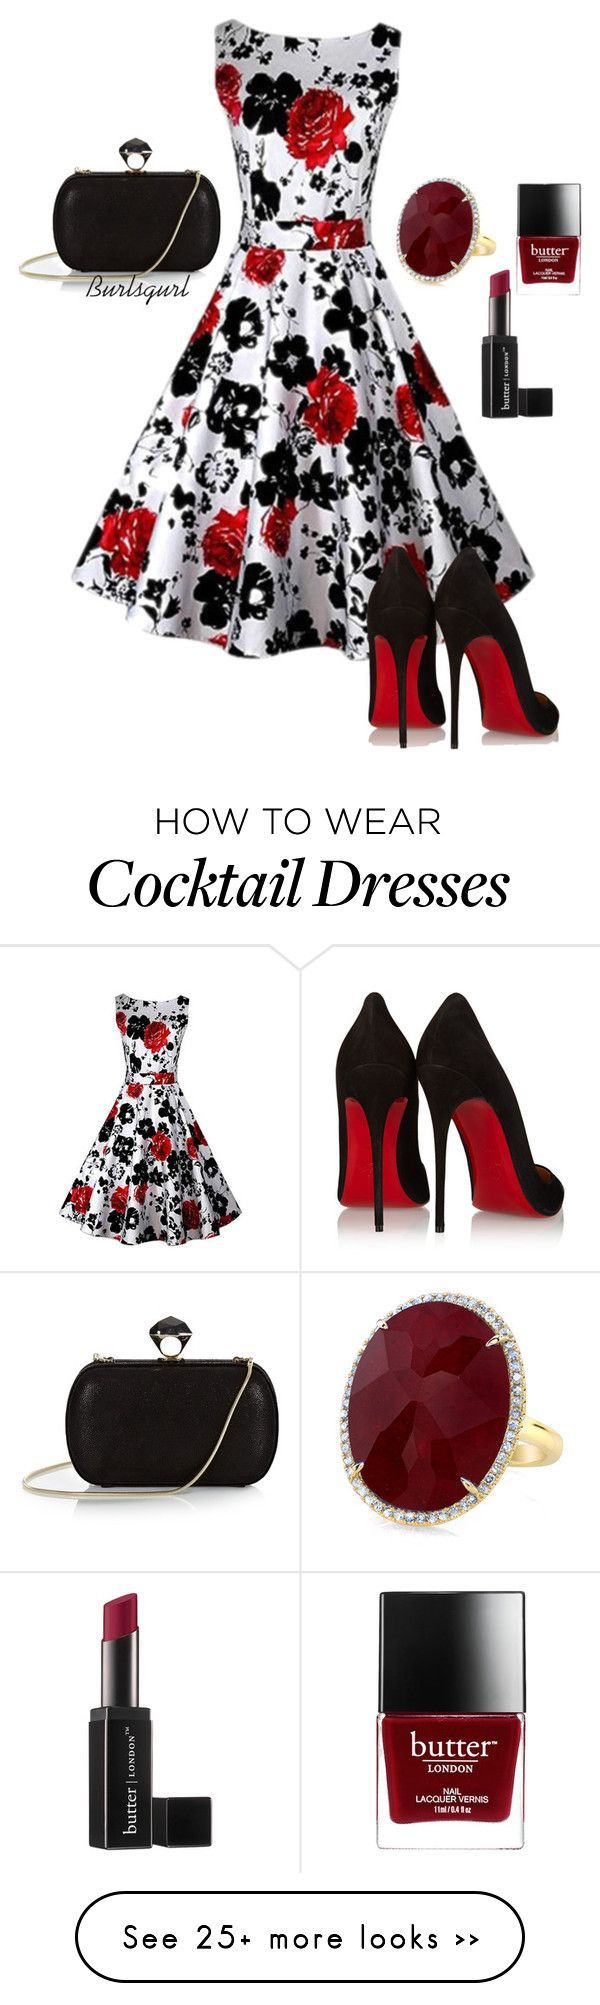 """""""Ruby"""" by burlsgurl on Polyvore featuring Christian Louboutin, DVF and Butter London"""